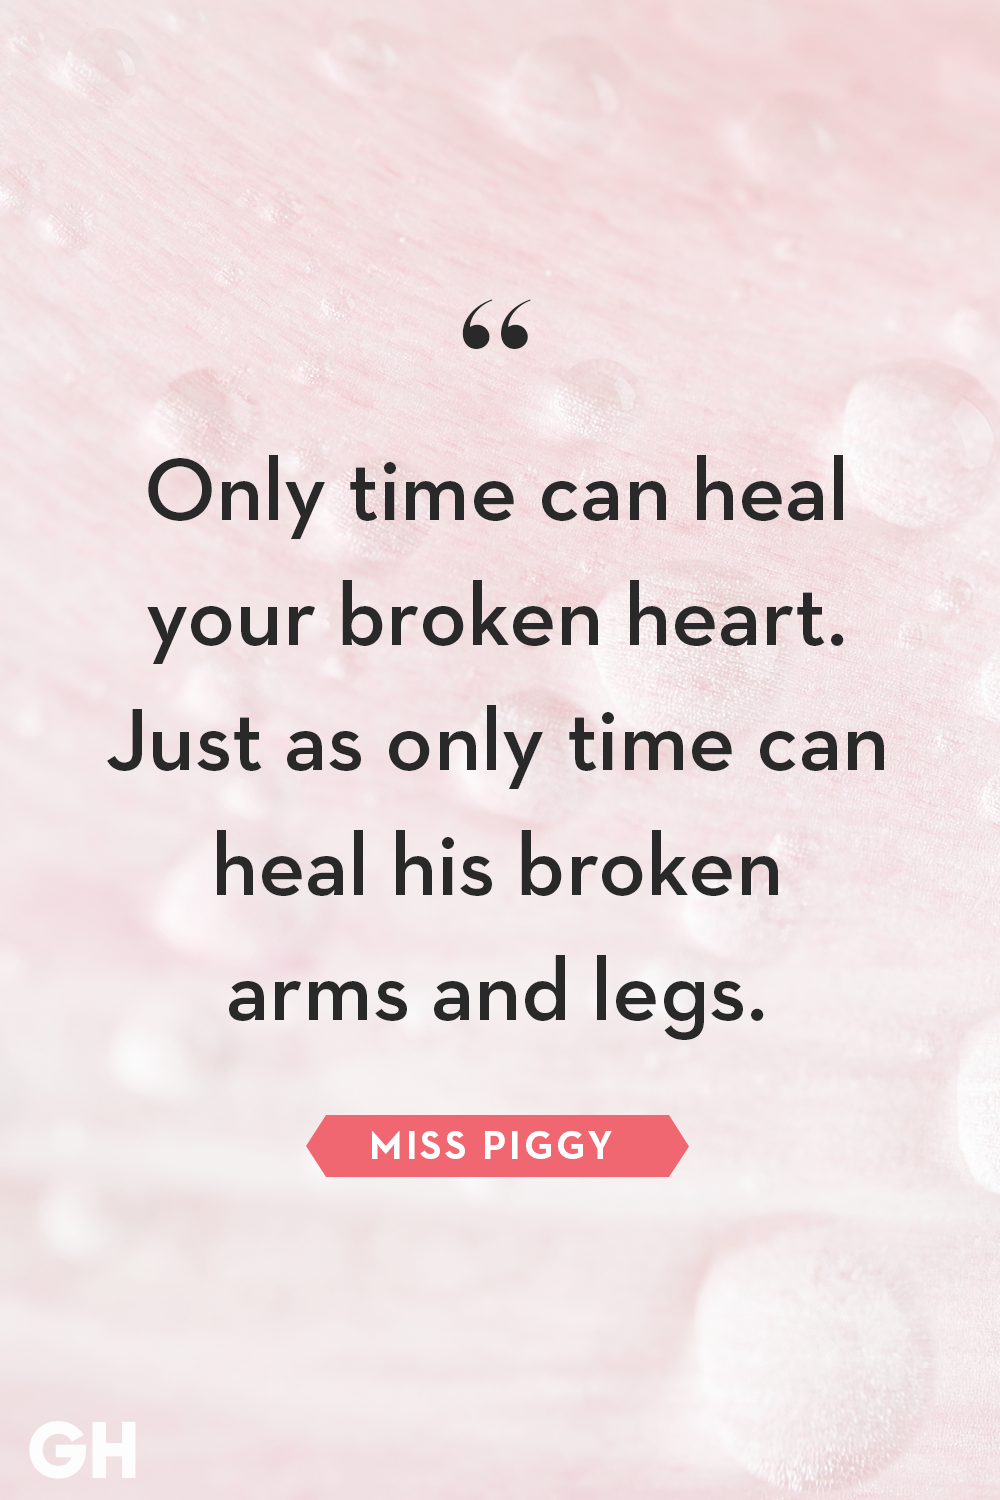 Miss Piggy Might Have the Greatest Breakup Advice of All